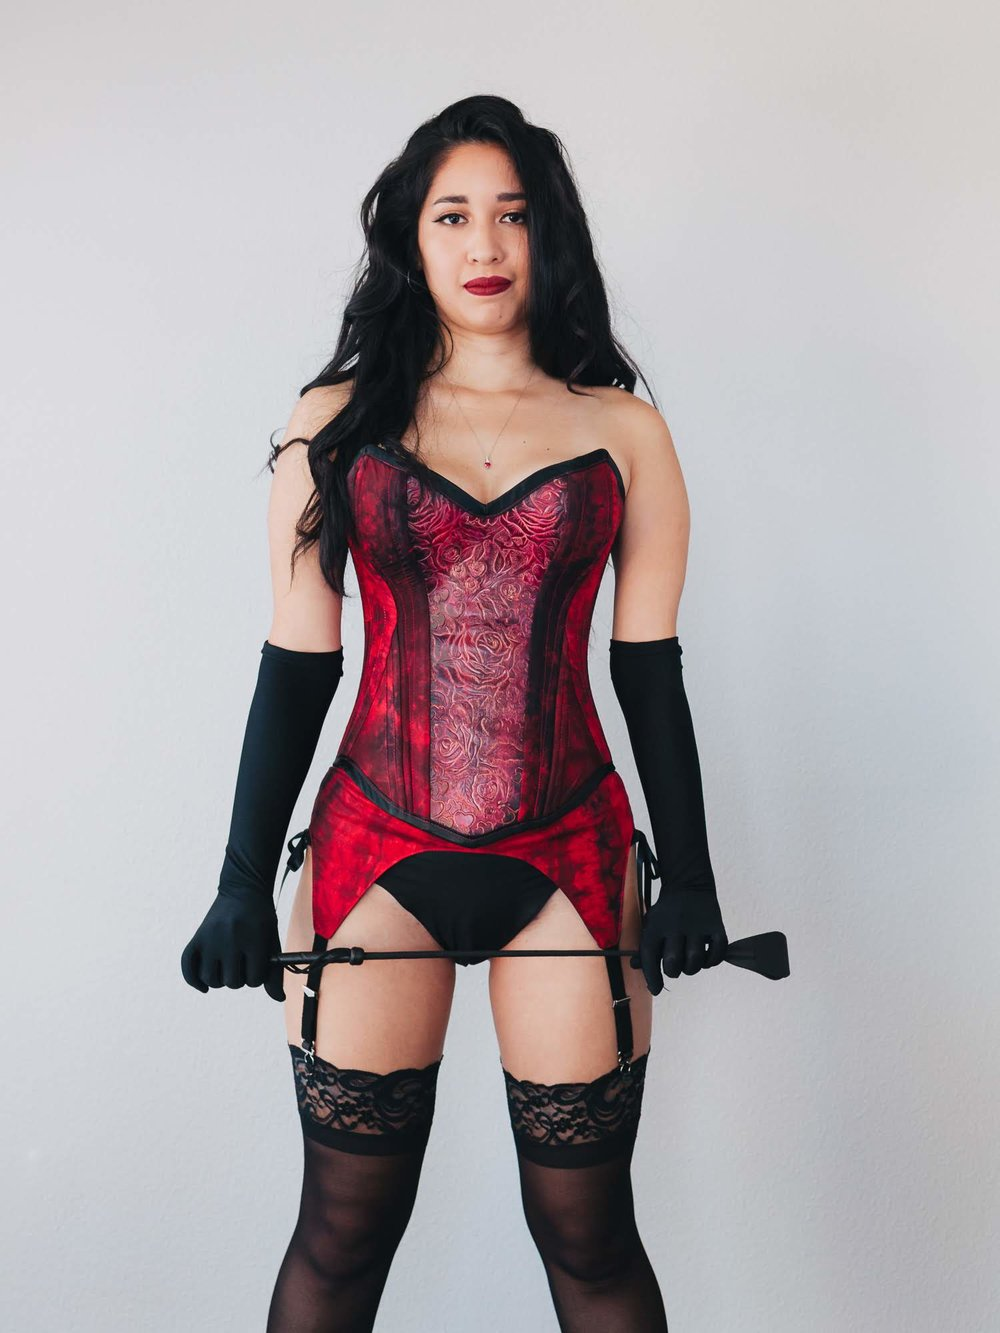 red-and-black-leather-corset.jpg